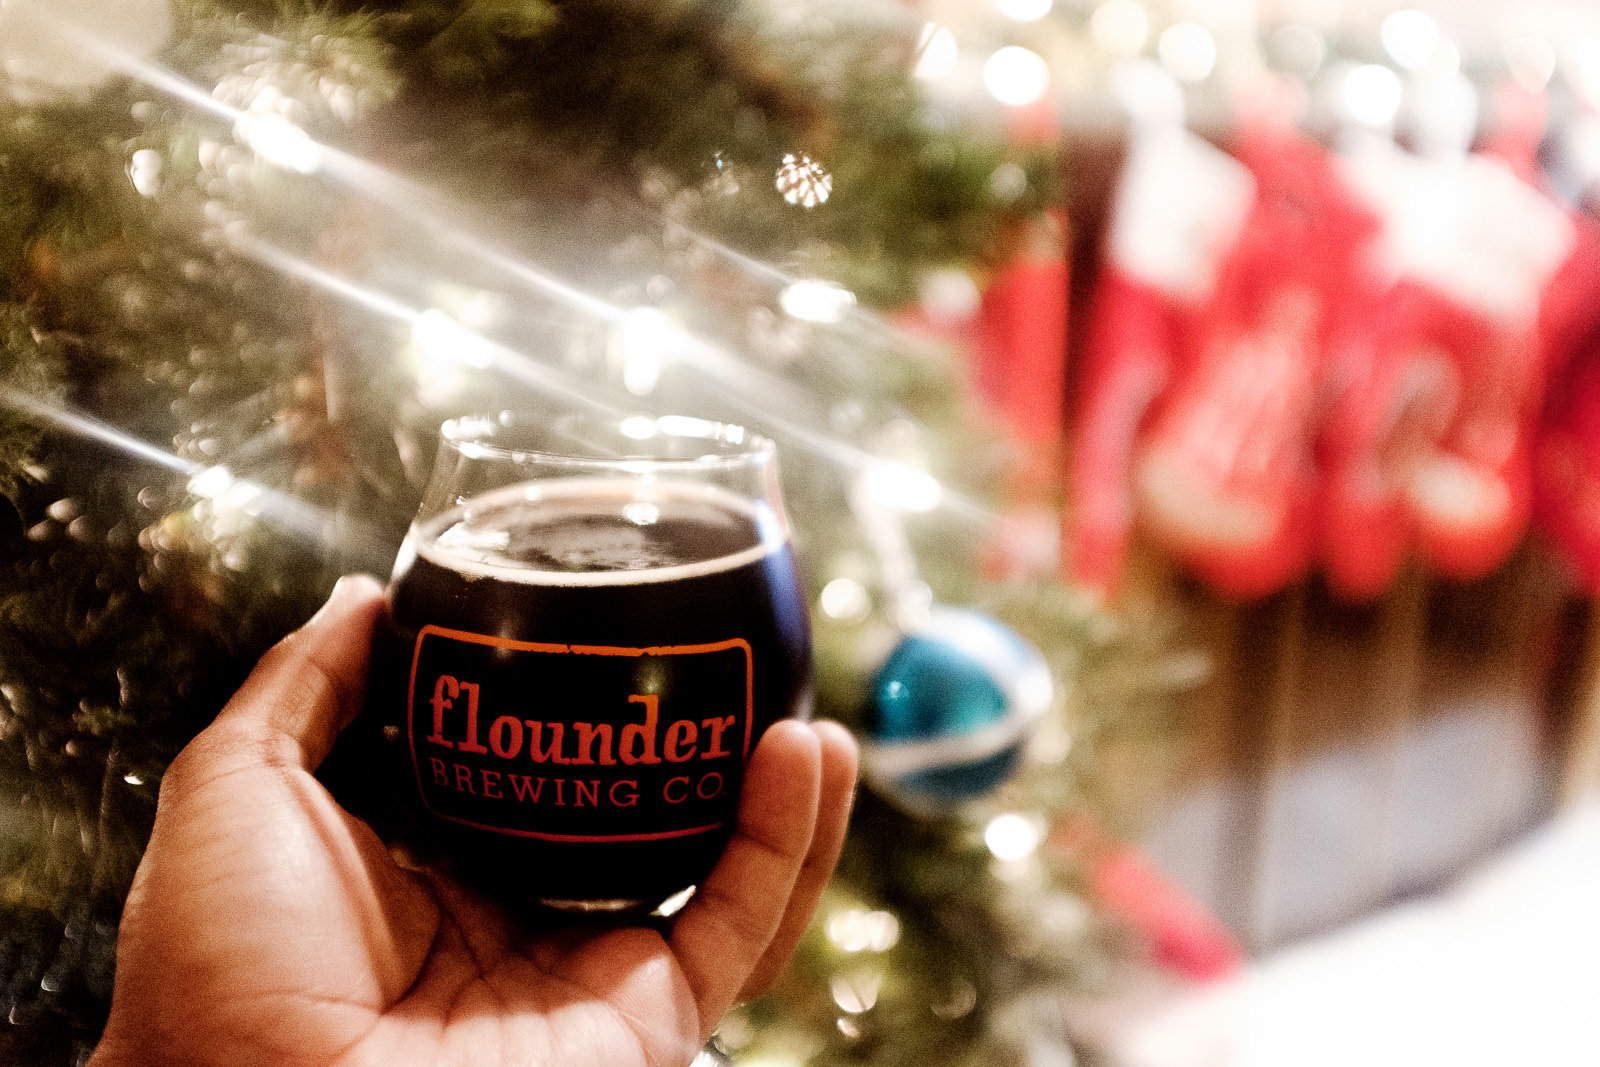 Flounder Brewing Co's St. Nick Christmas Ale